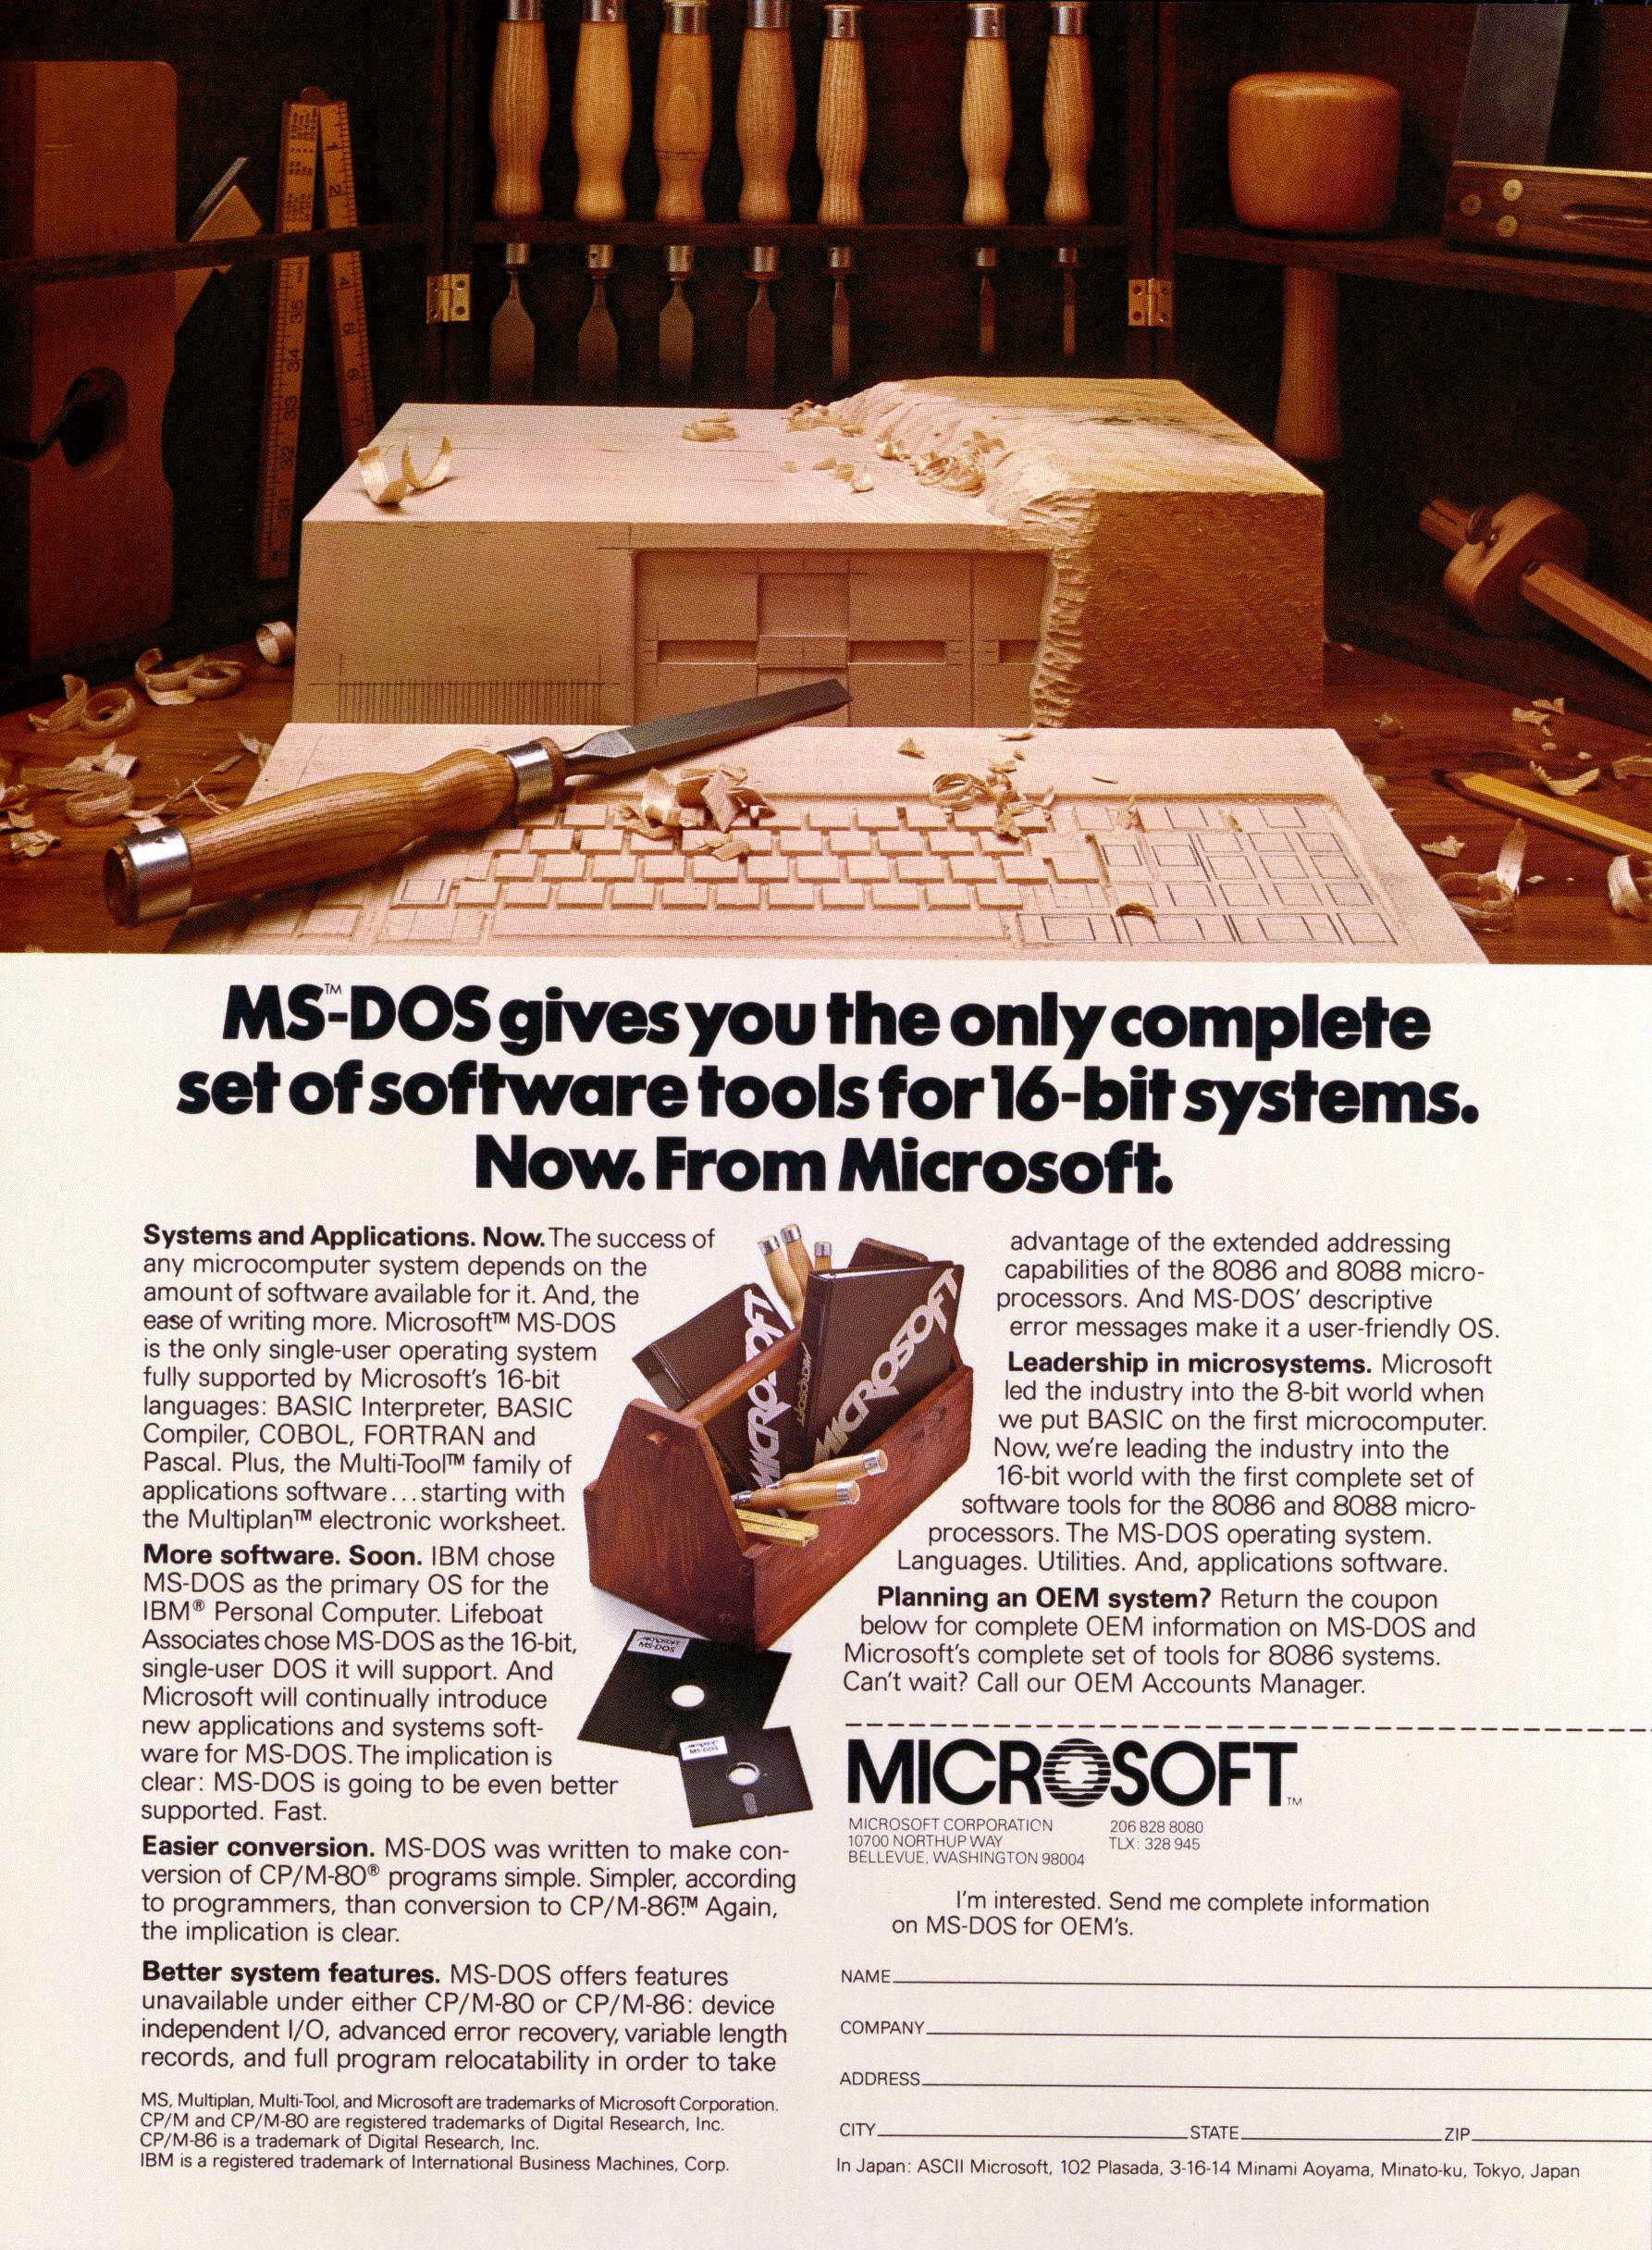 The original MS-DOS advertisement in 1981.